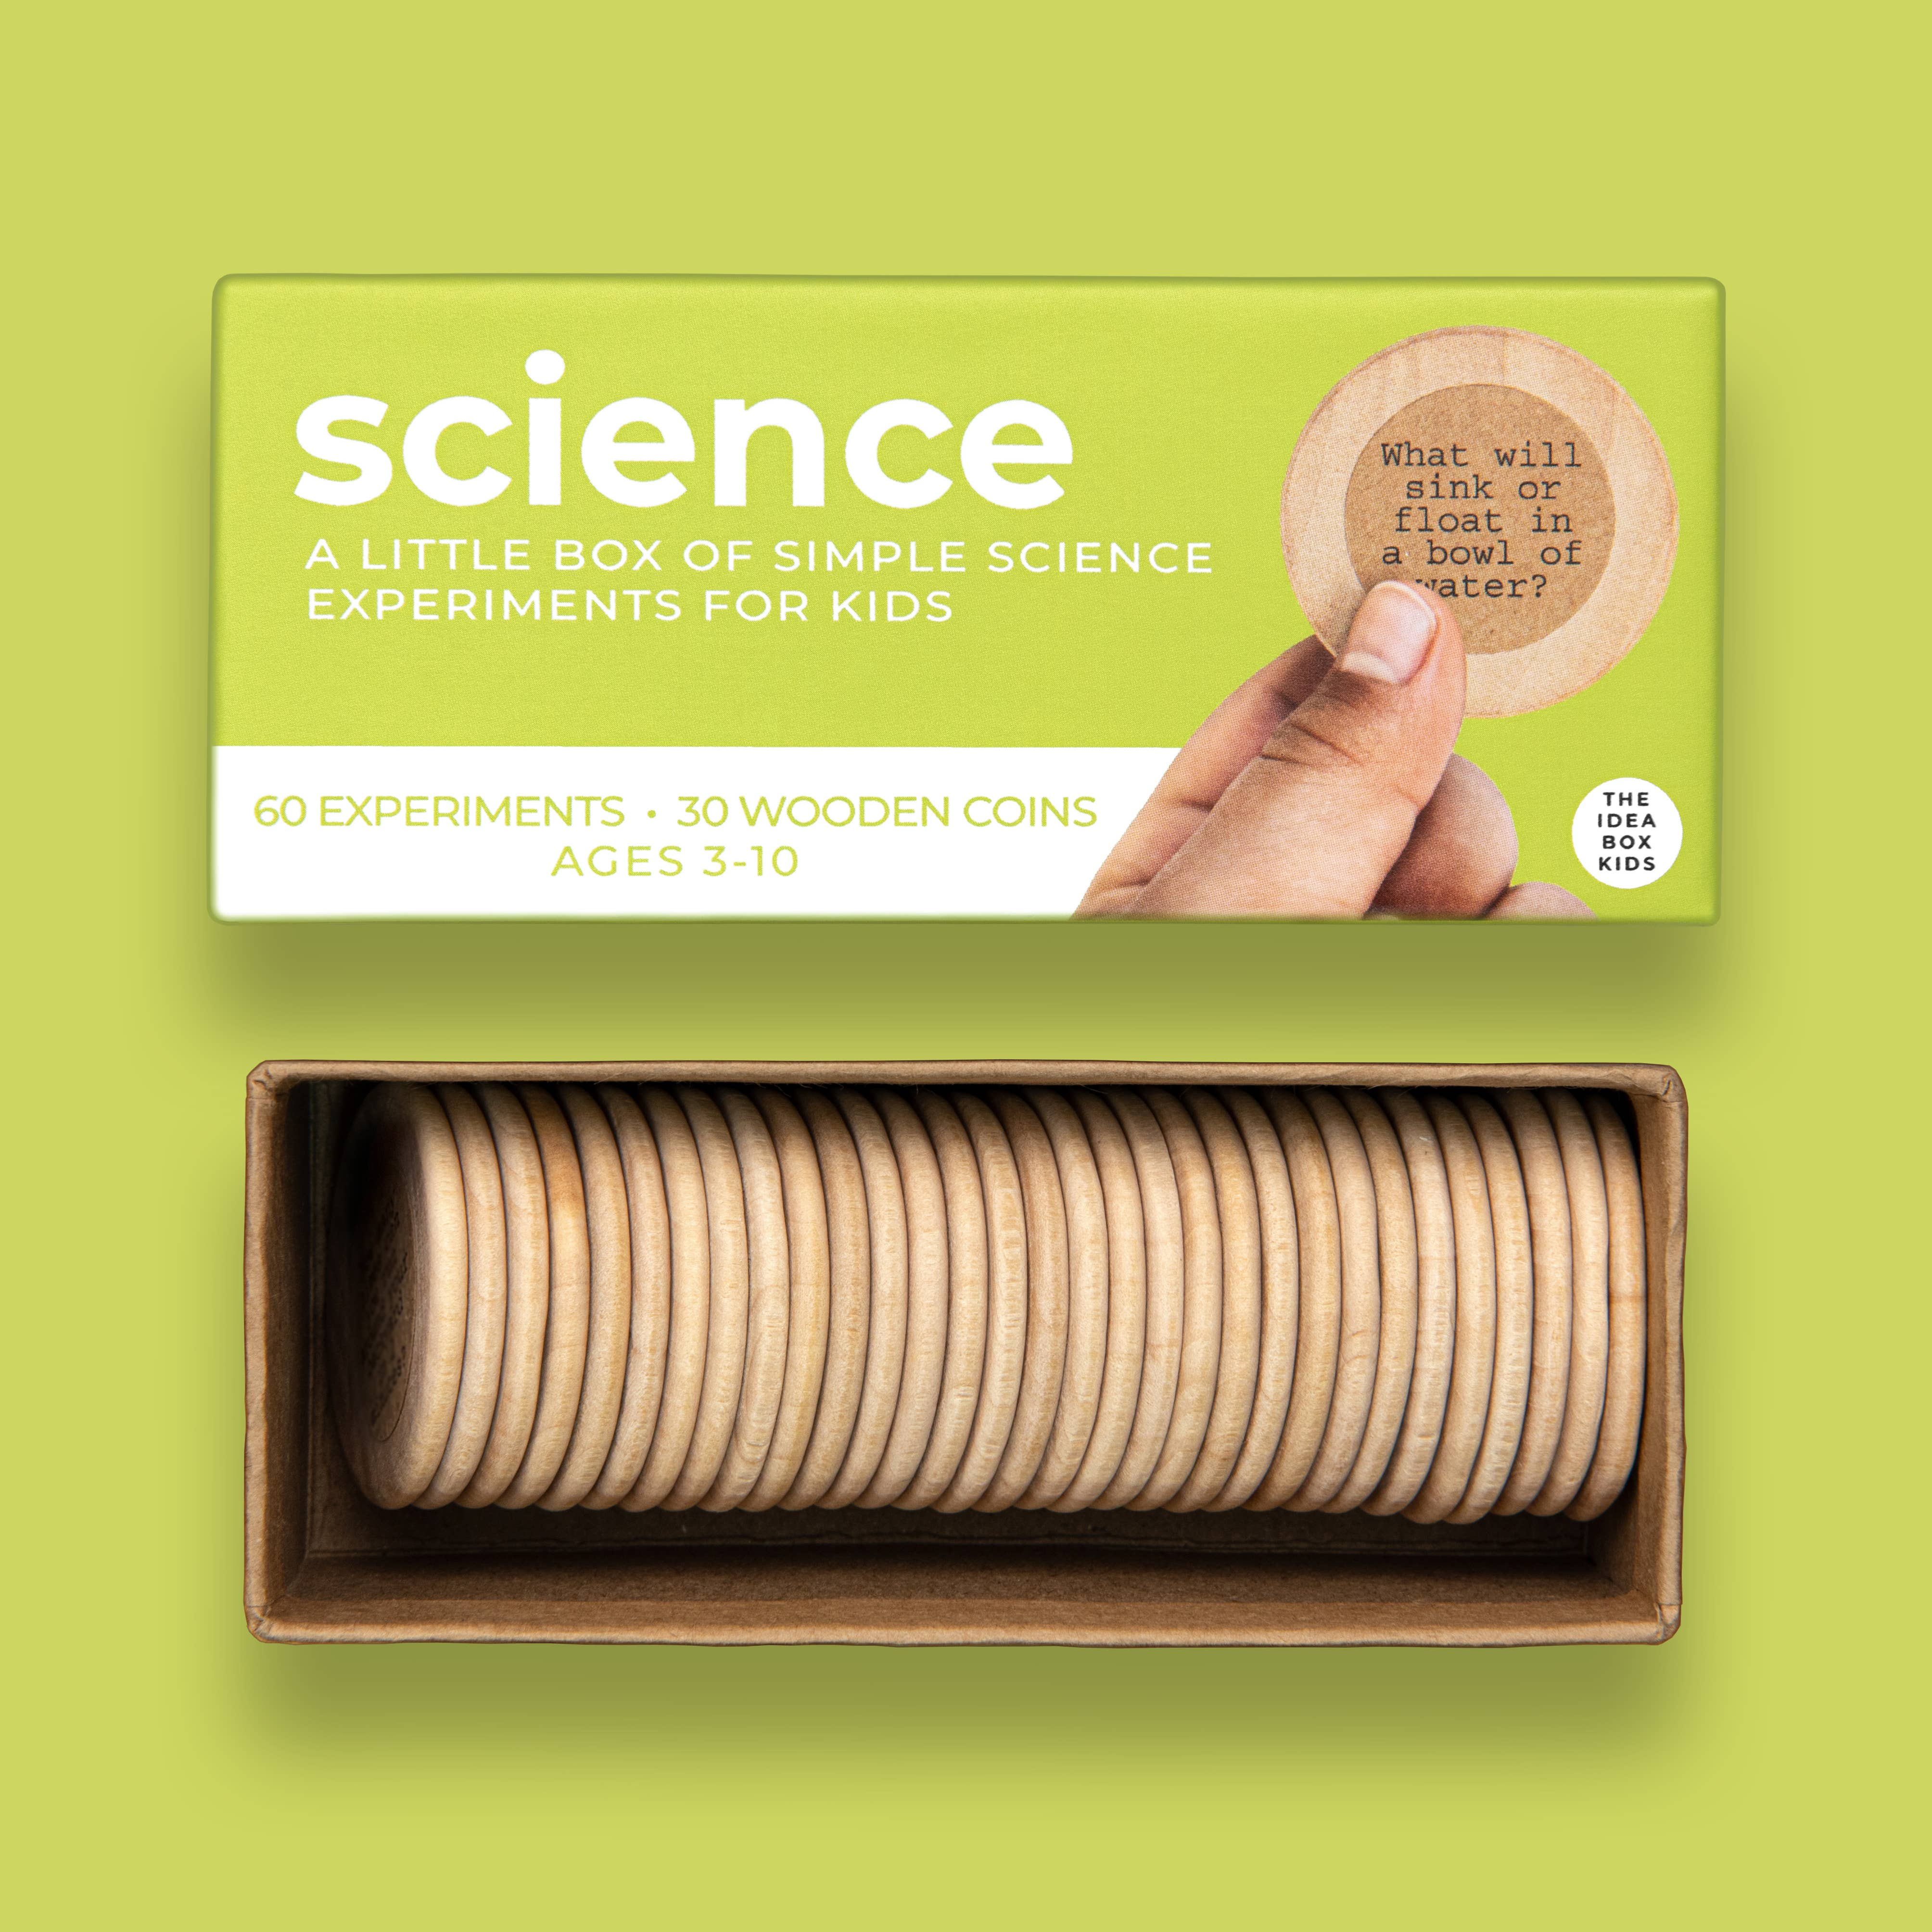 Science - Simple Science Experiments for Kids